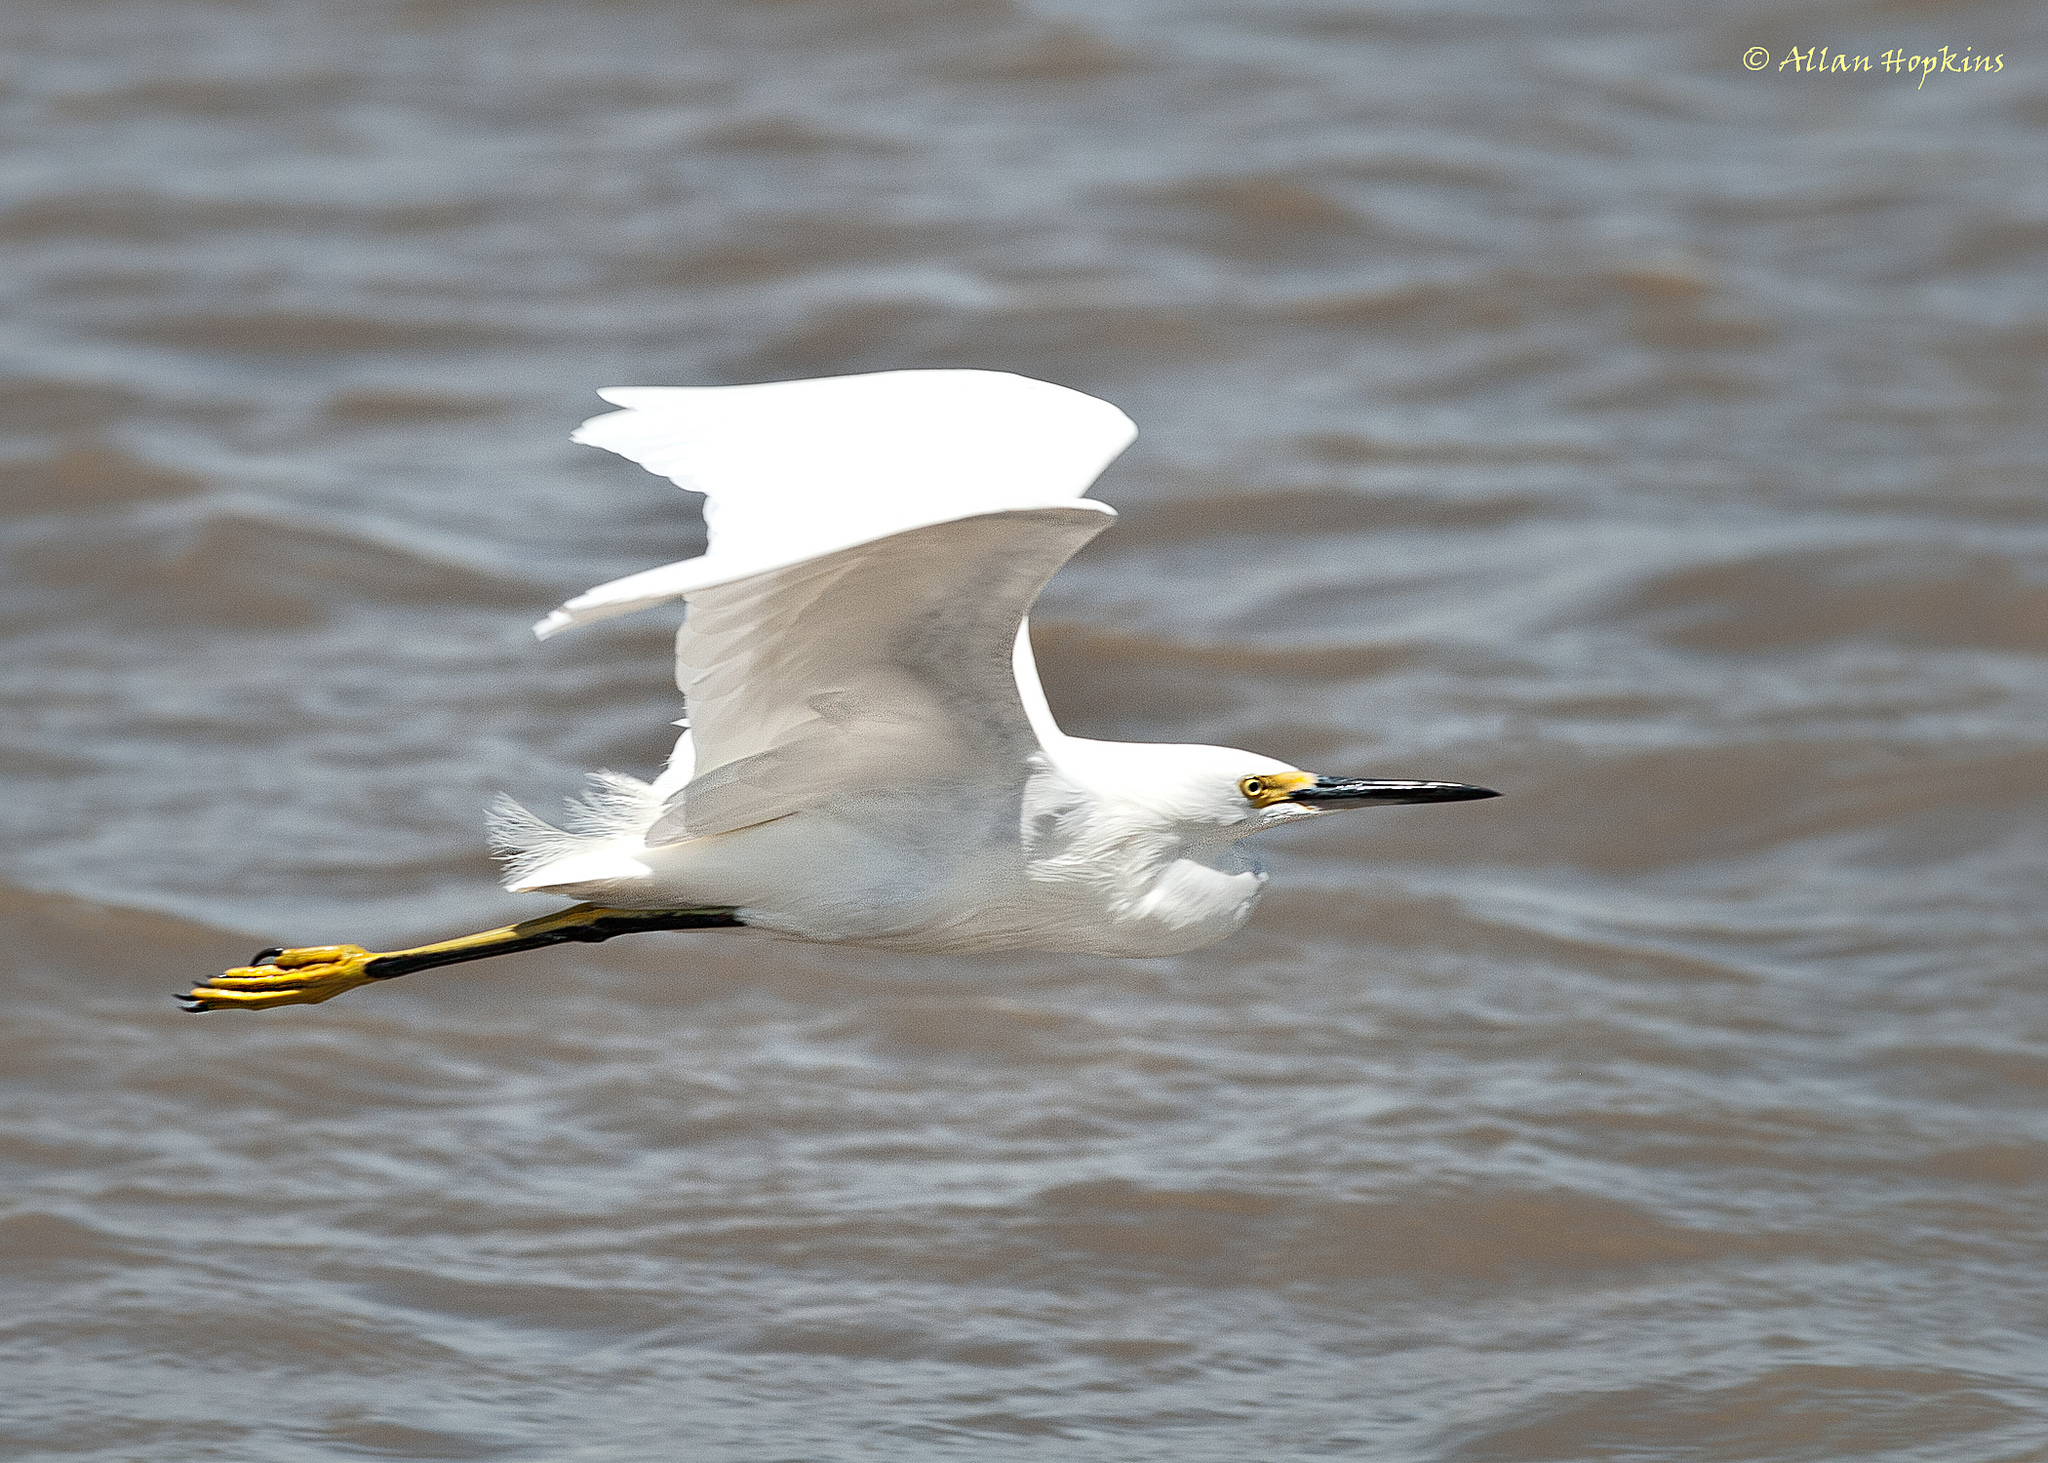 Snowy Egret (Egretta t. thula) in flight Book 3 Chapter 6: Essequibo